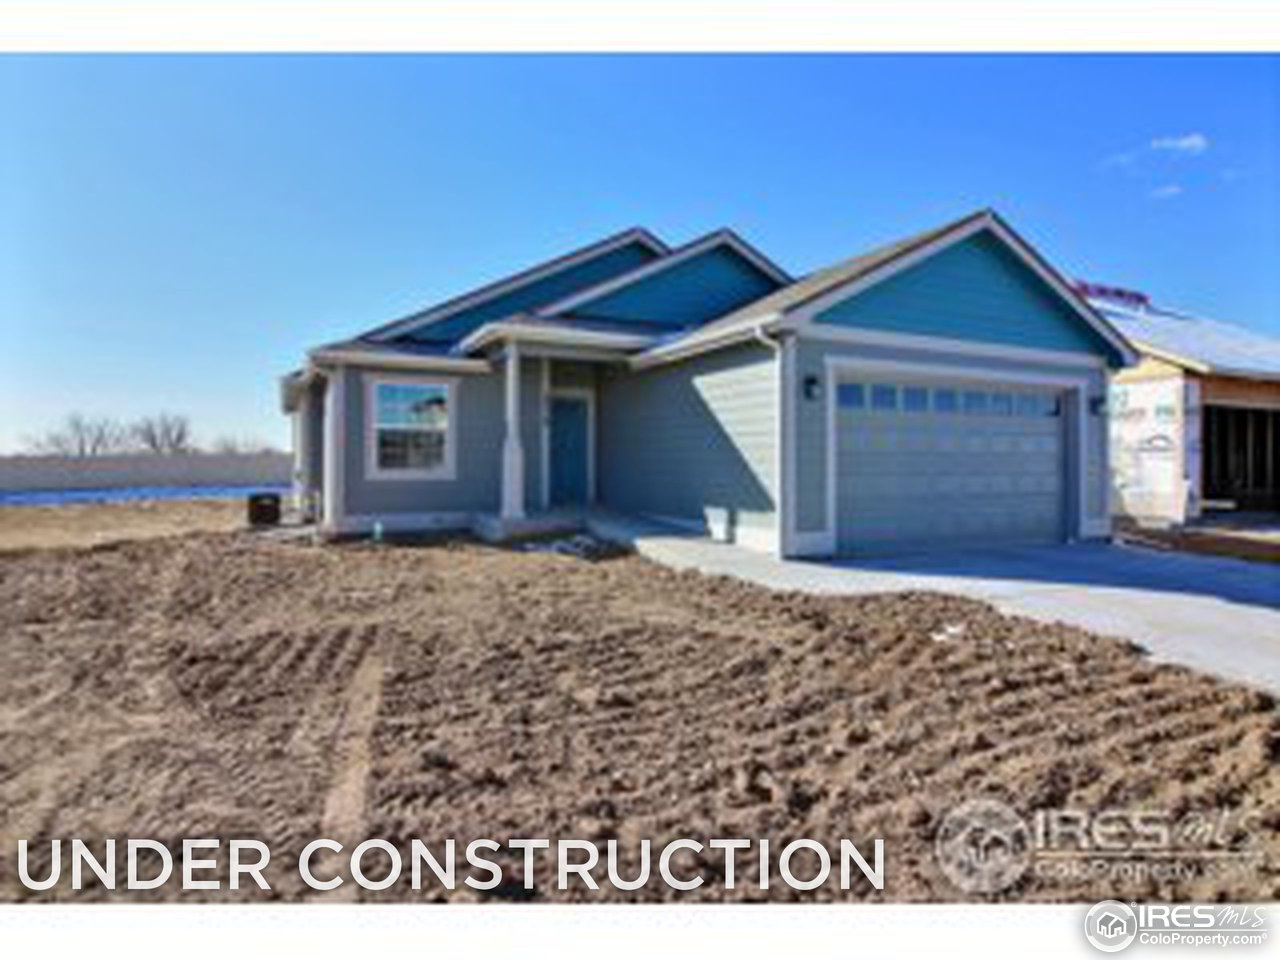 7117 23rd St, Greeley CO 80634